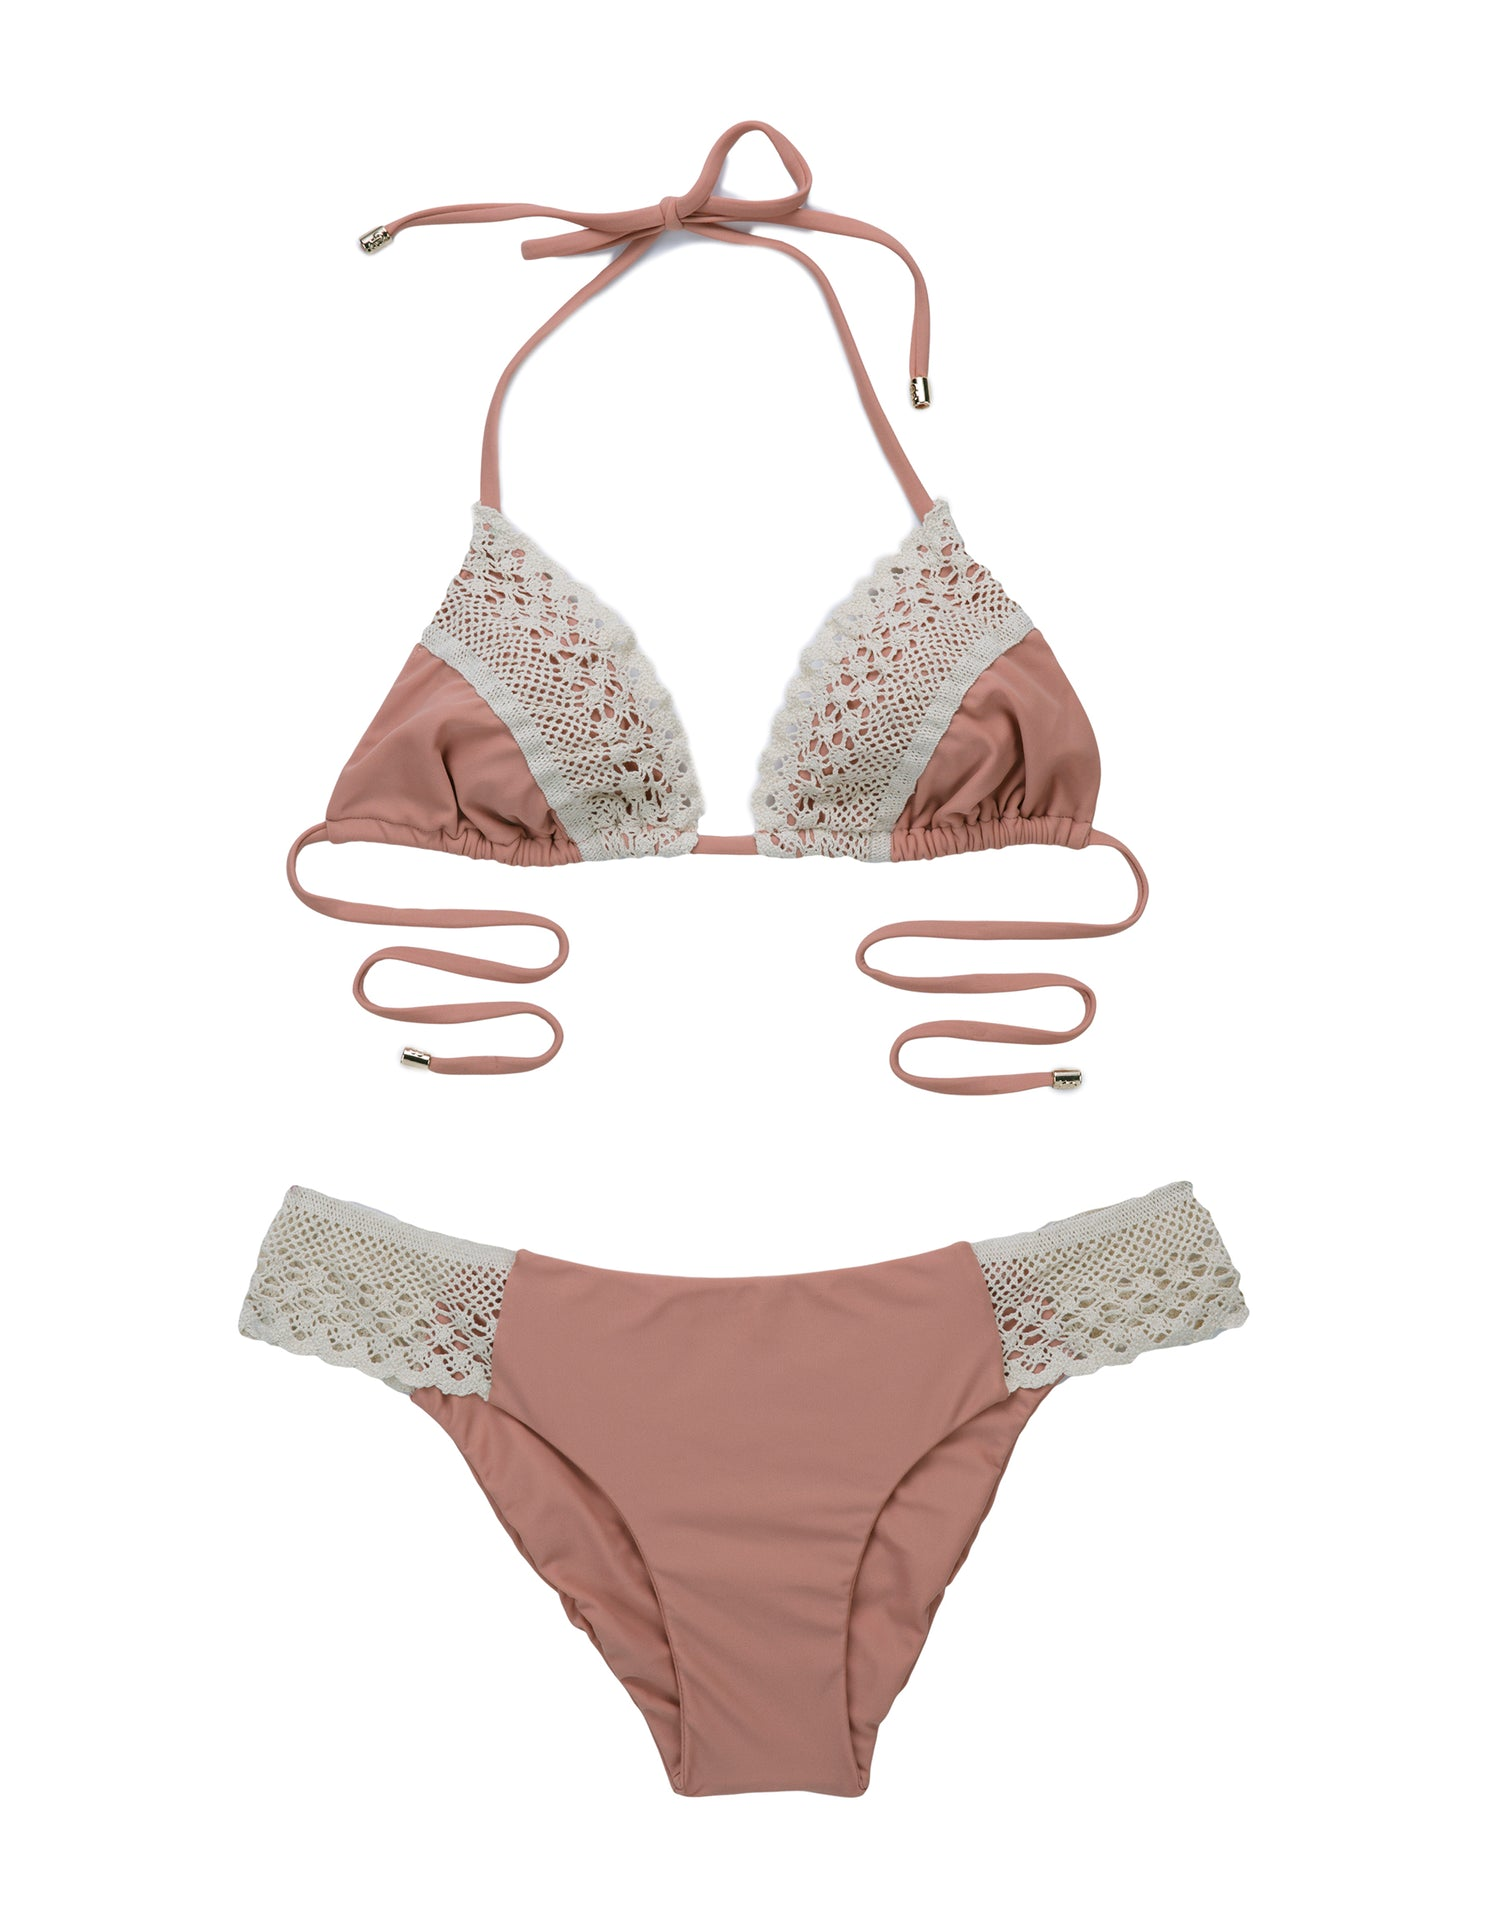 Lady Lace Triangle Bikini Top in Whiskey Rose - product view